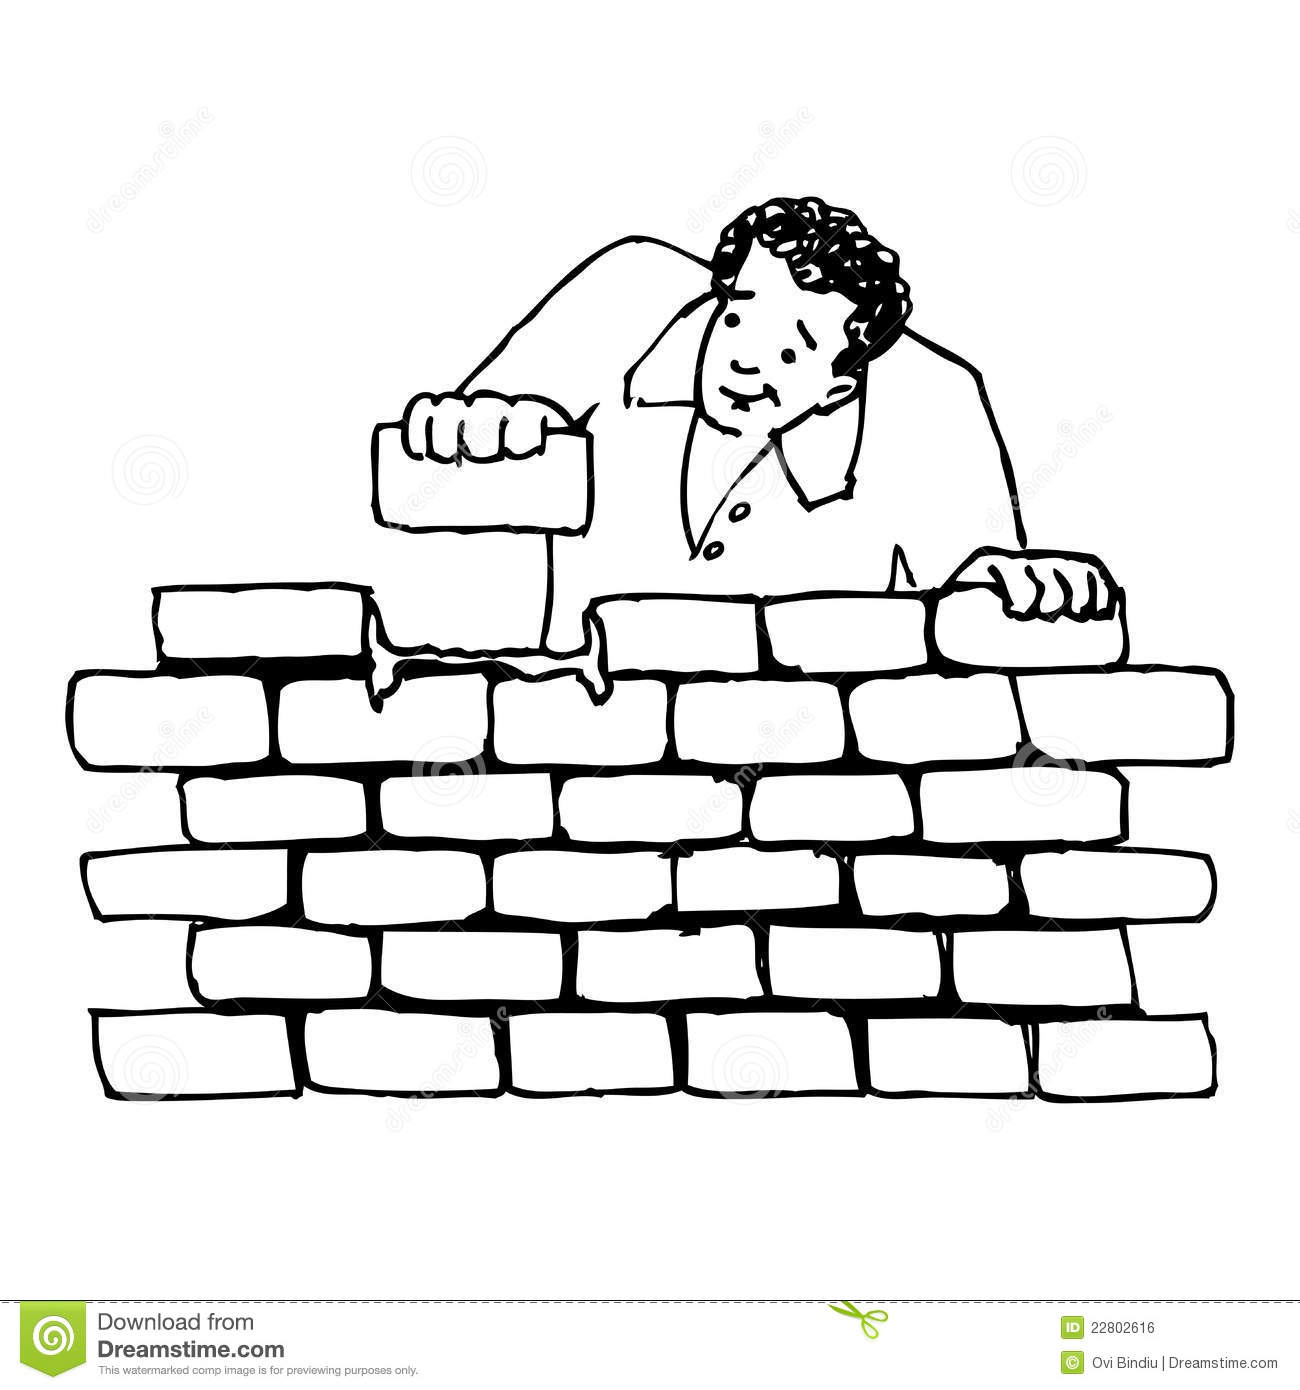 Building a wall stock illustration. Illustration of work